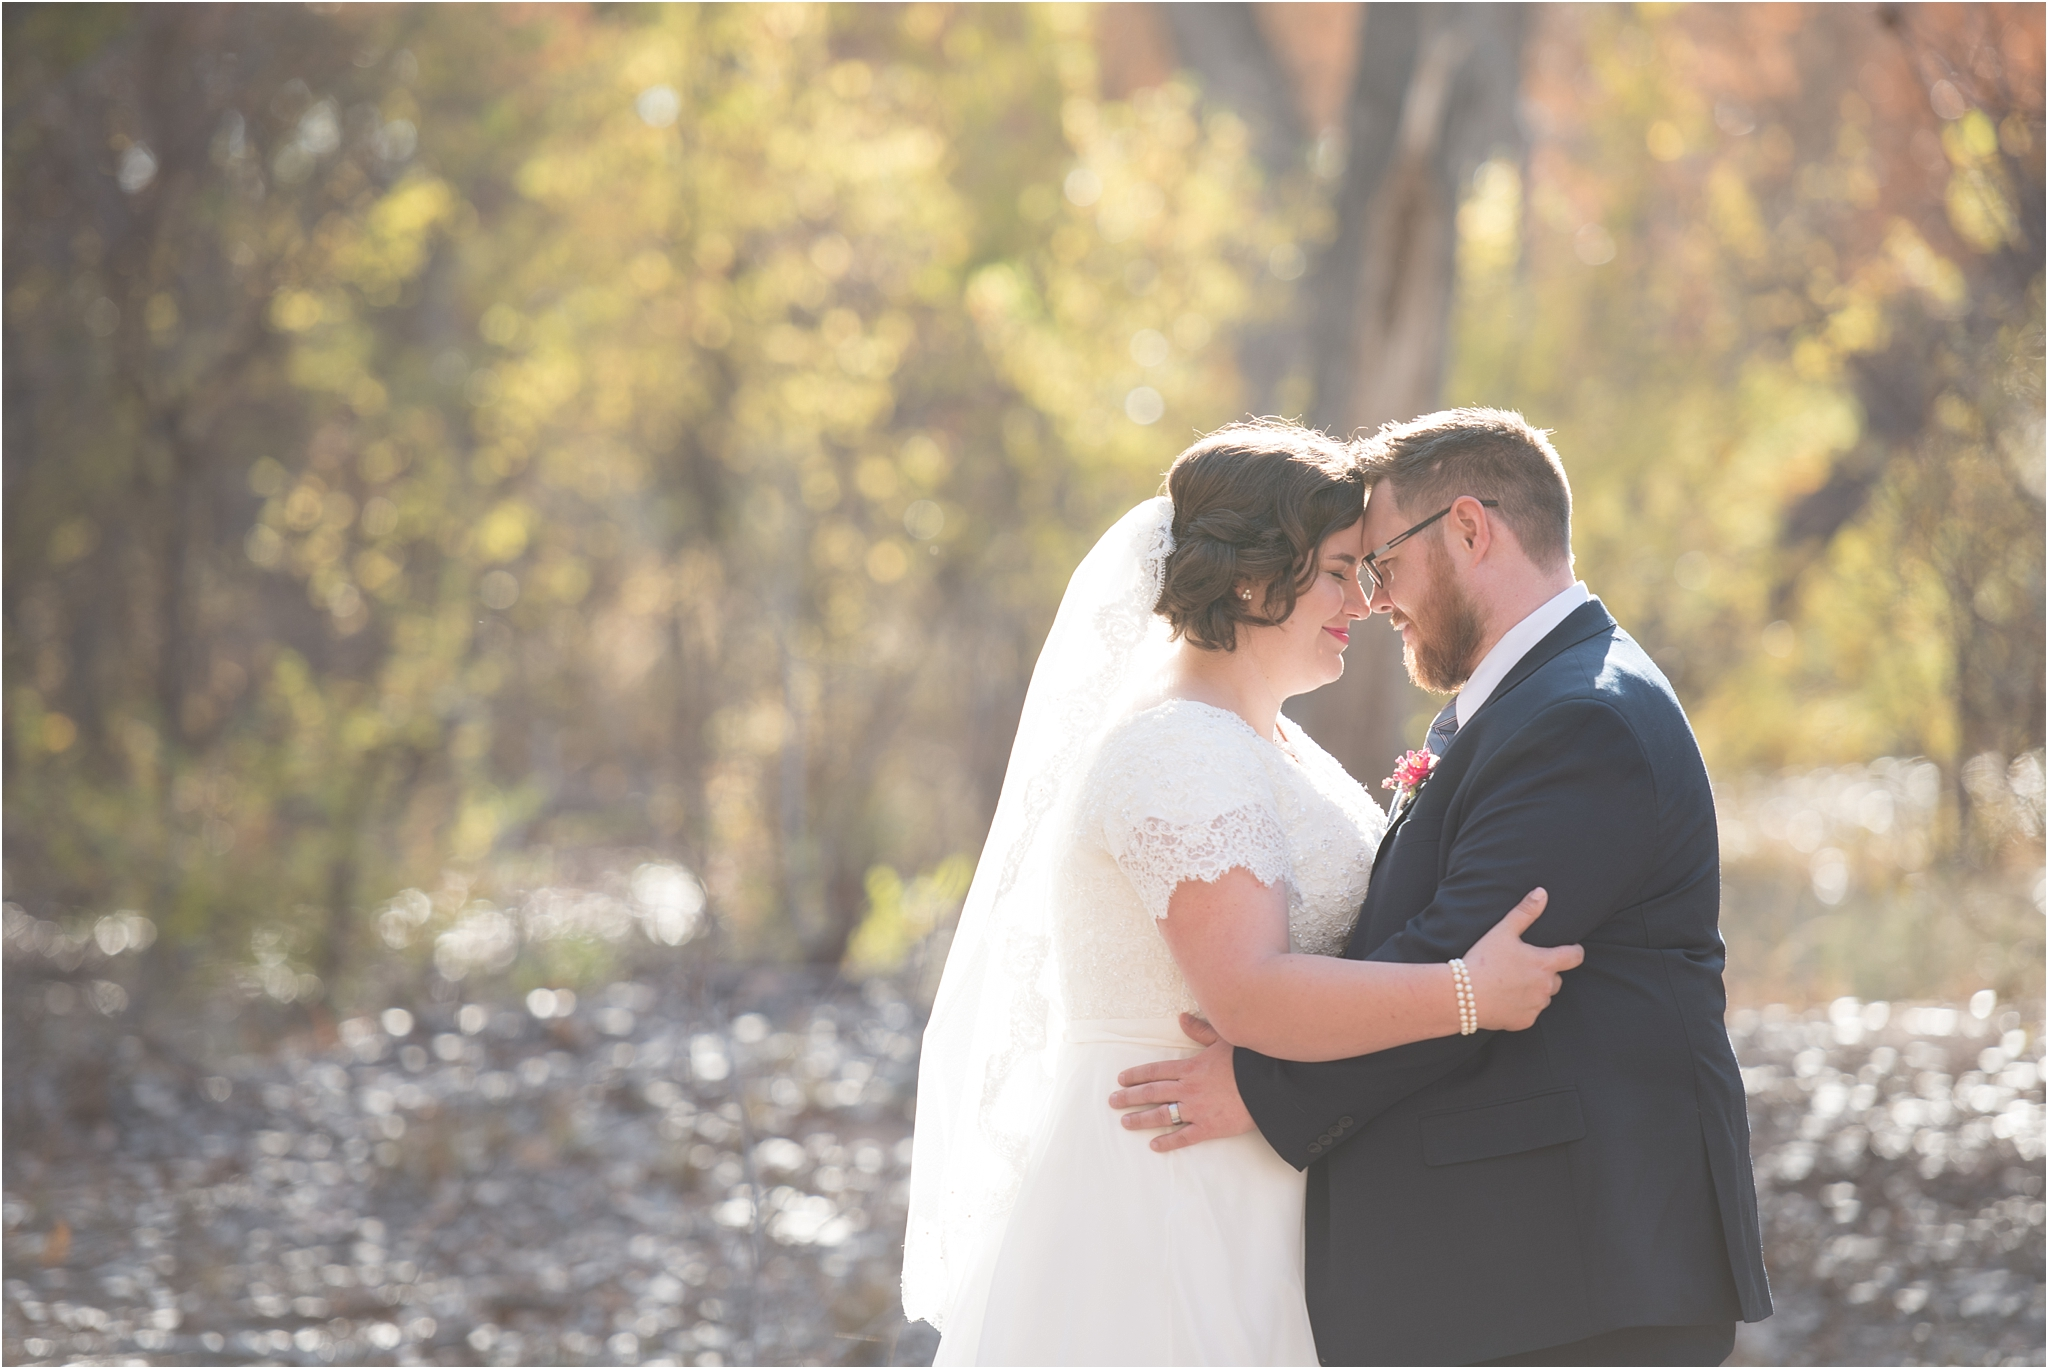 kayla kitts photography - albuquerque wedding photographer - hairpins and scissors - a cake odyssey - new mexico wedding photographer_0110.jpg